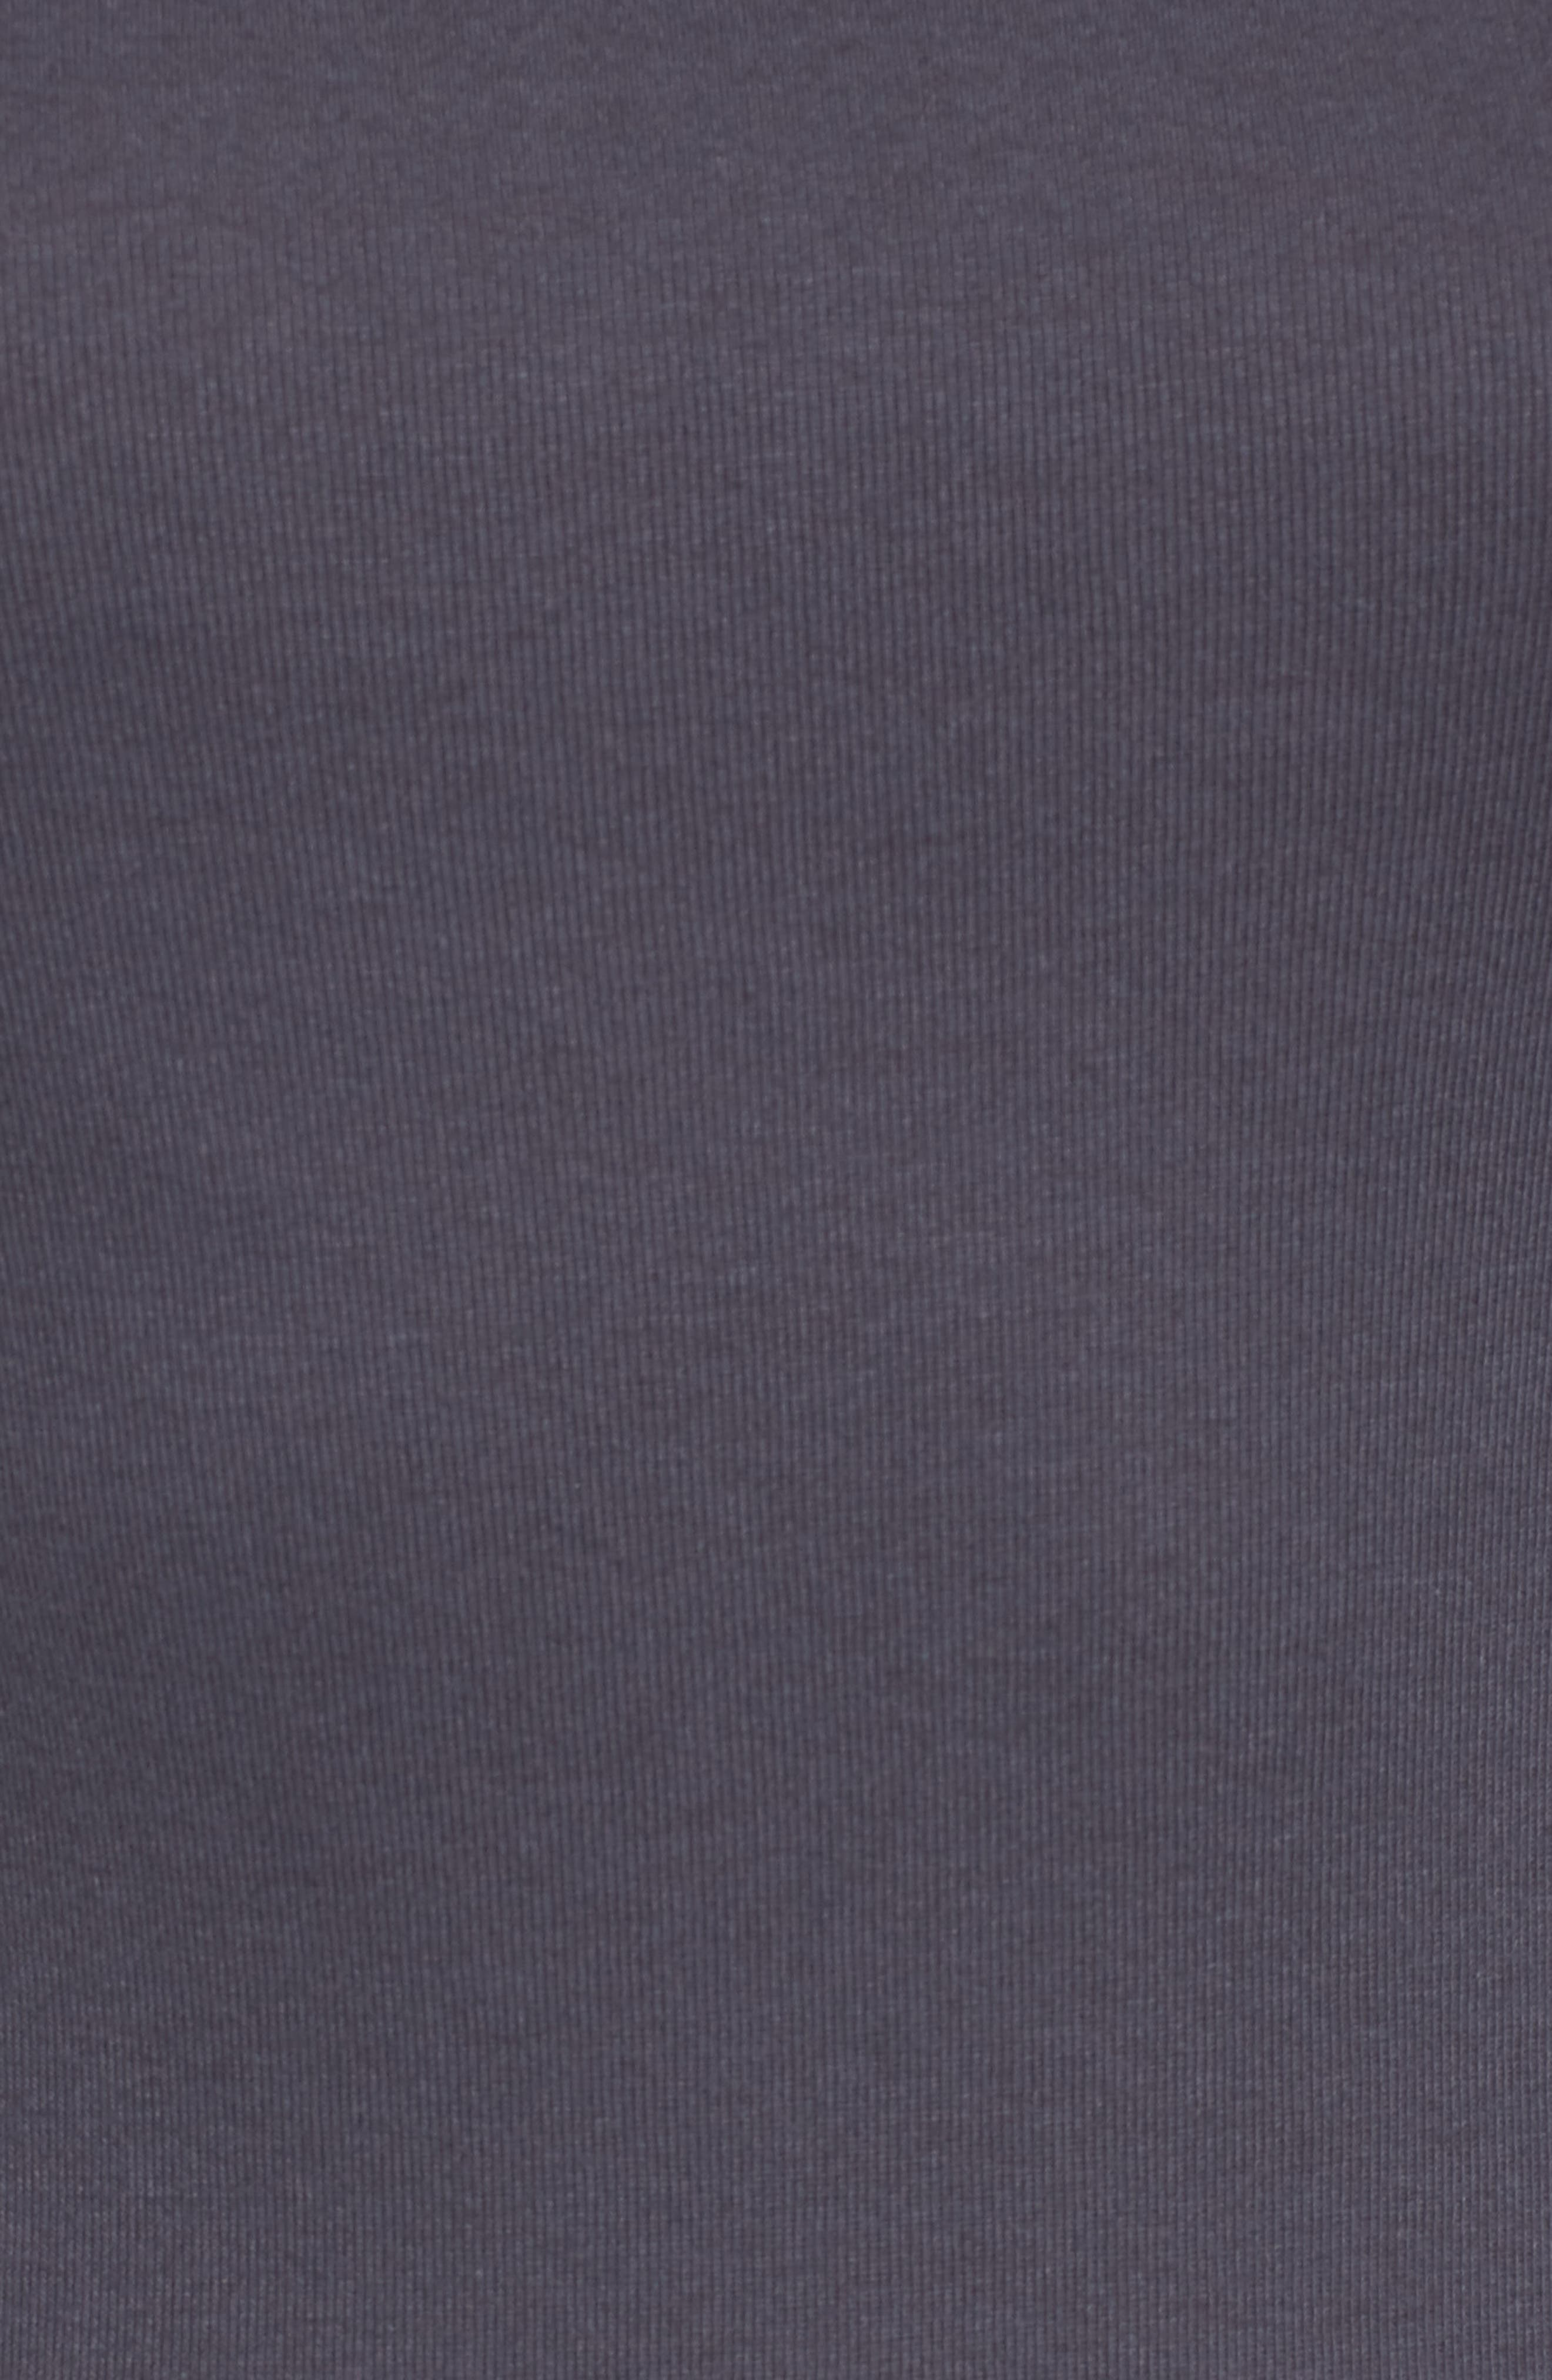 Ballet Neck Cotton & Modal Knit Elbow Sleeve Tee,                             Alternate thumbnail 5, color,                             GREY EBONY